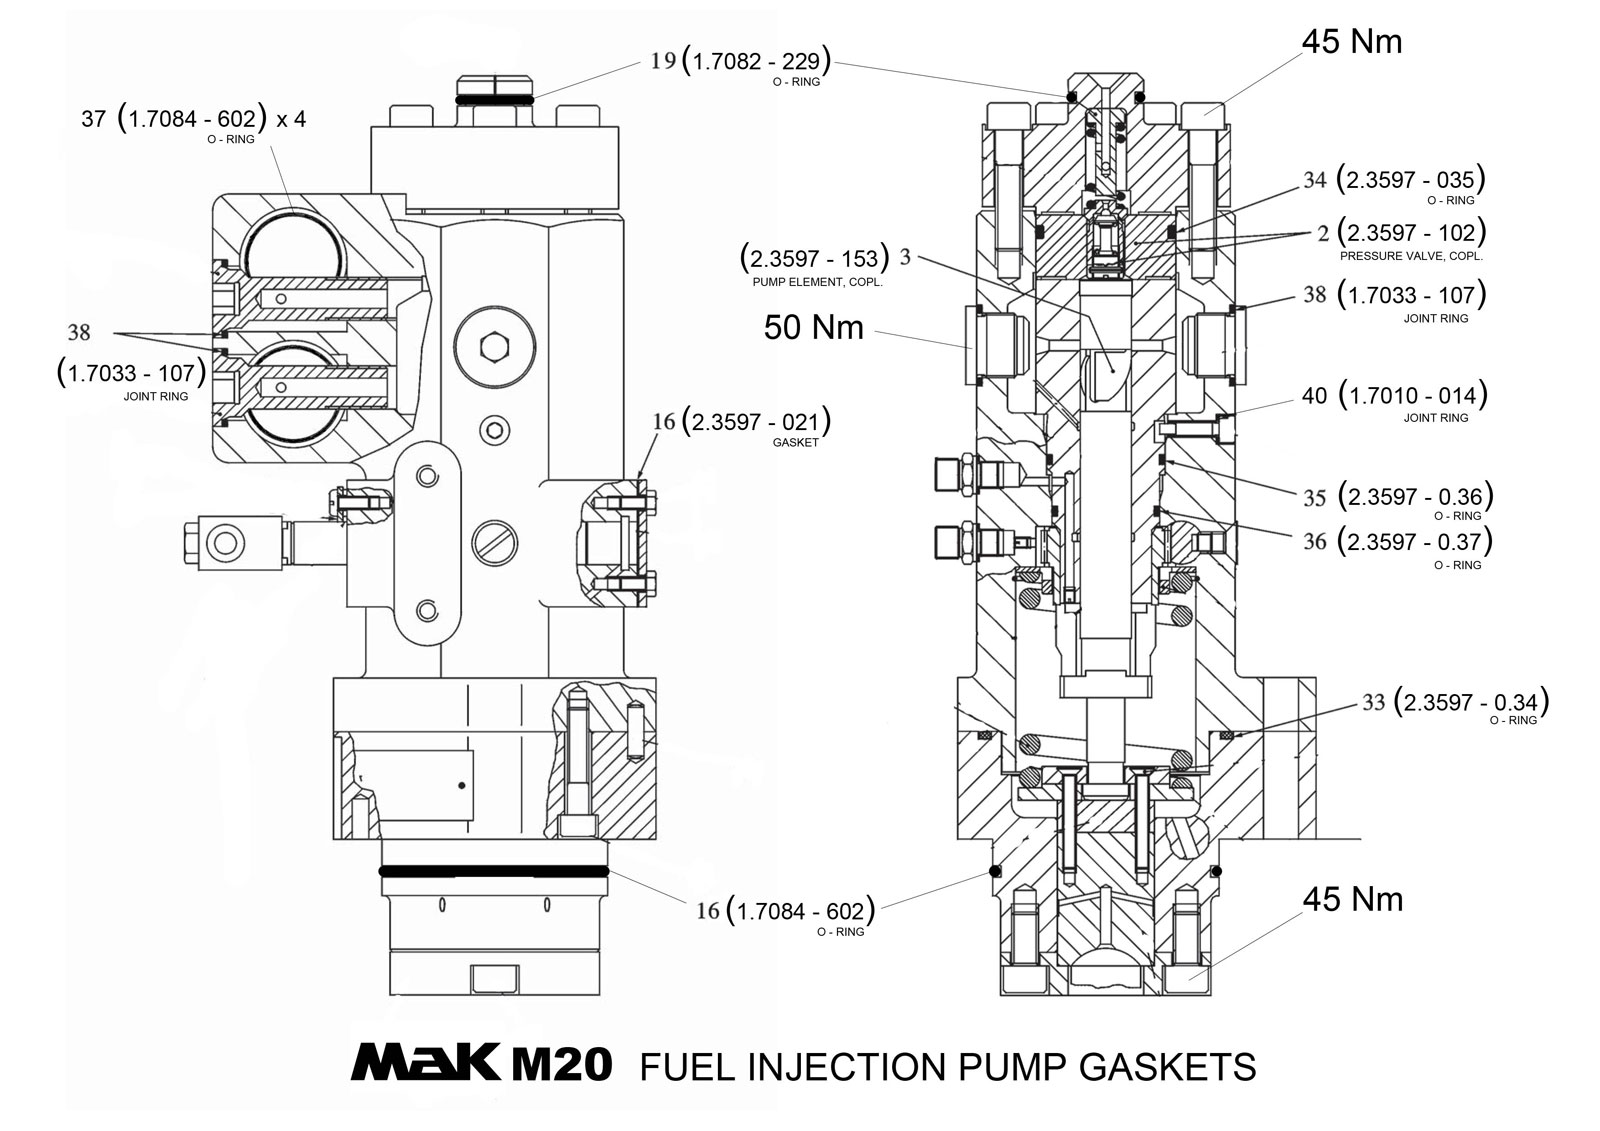 Fuel Injection Pump (ТНВД) MAK M20